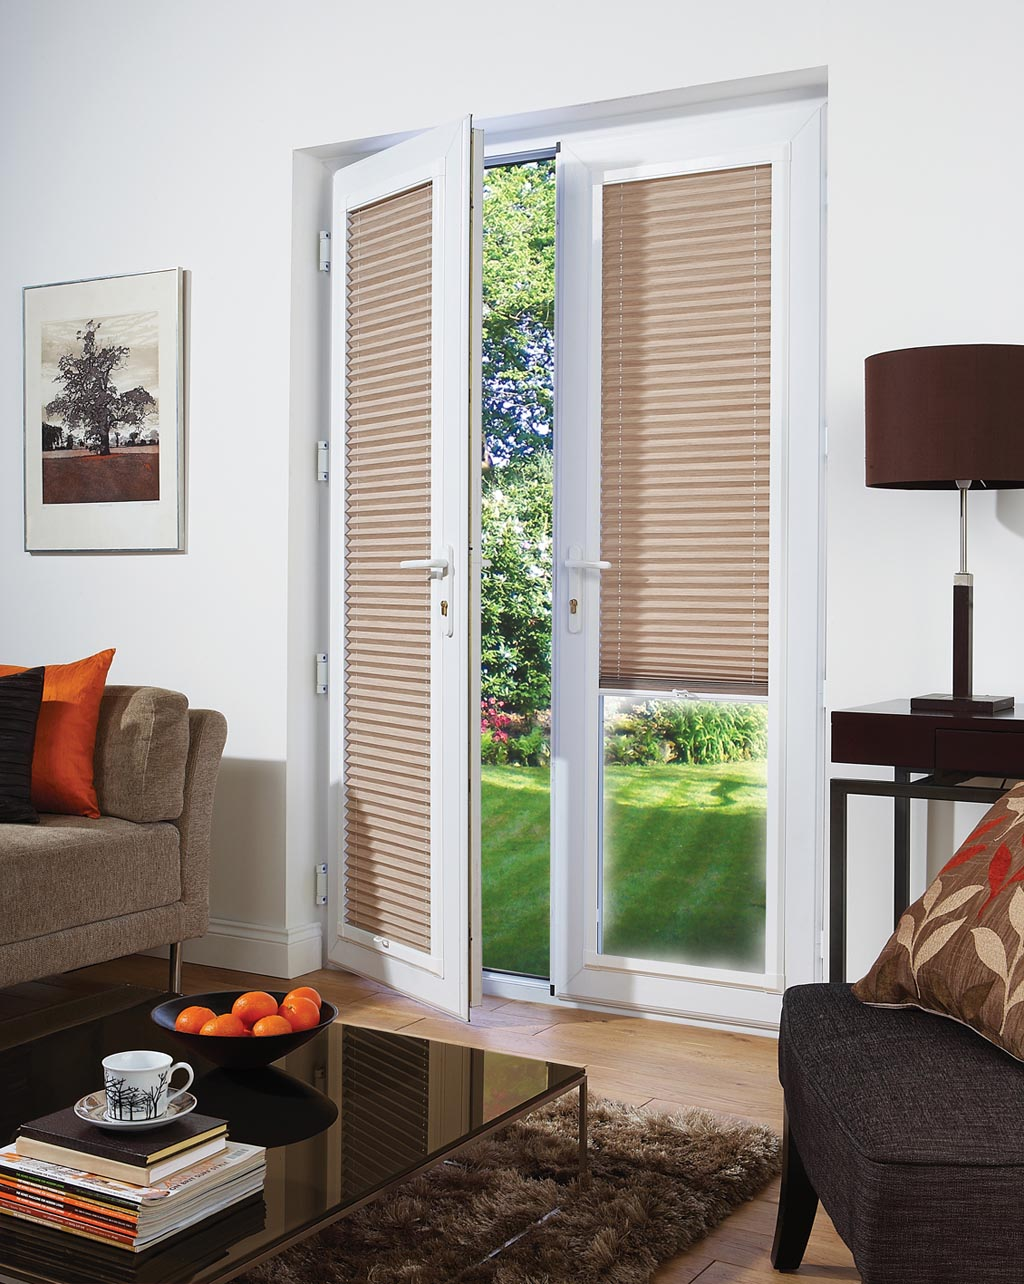 Bamboo shades for patio doors window treatments design ideas for Door window shades blinds